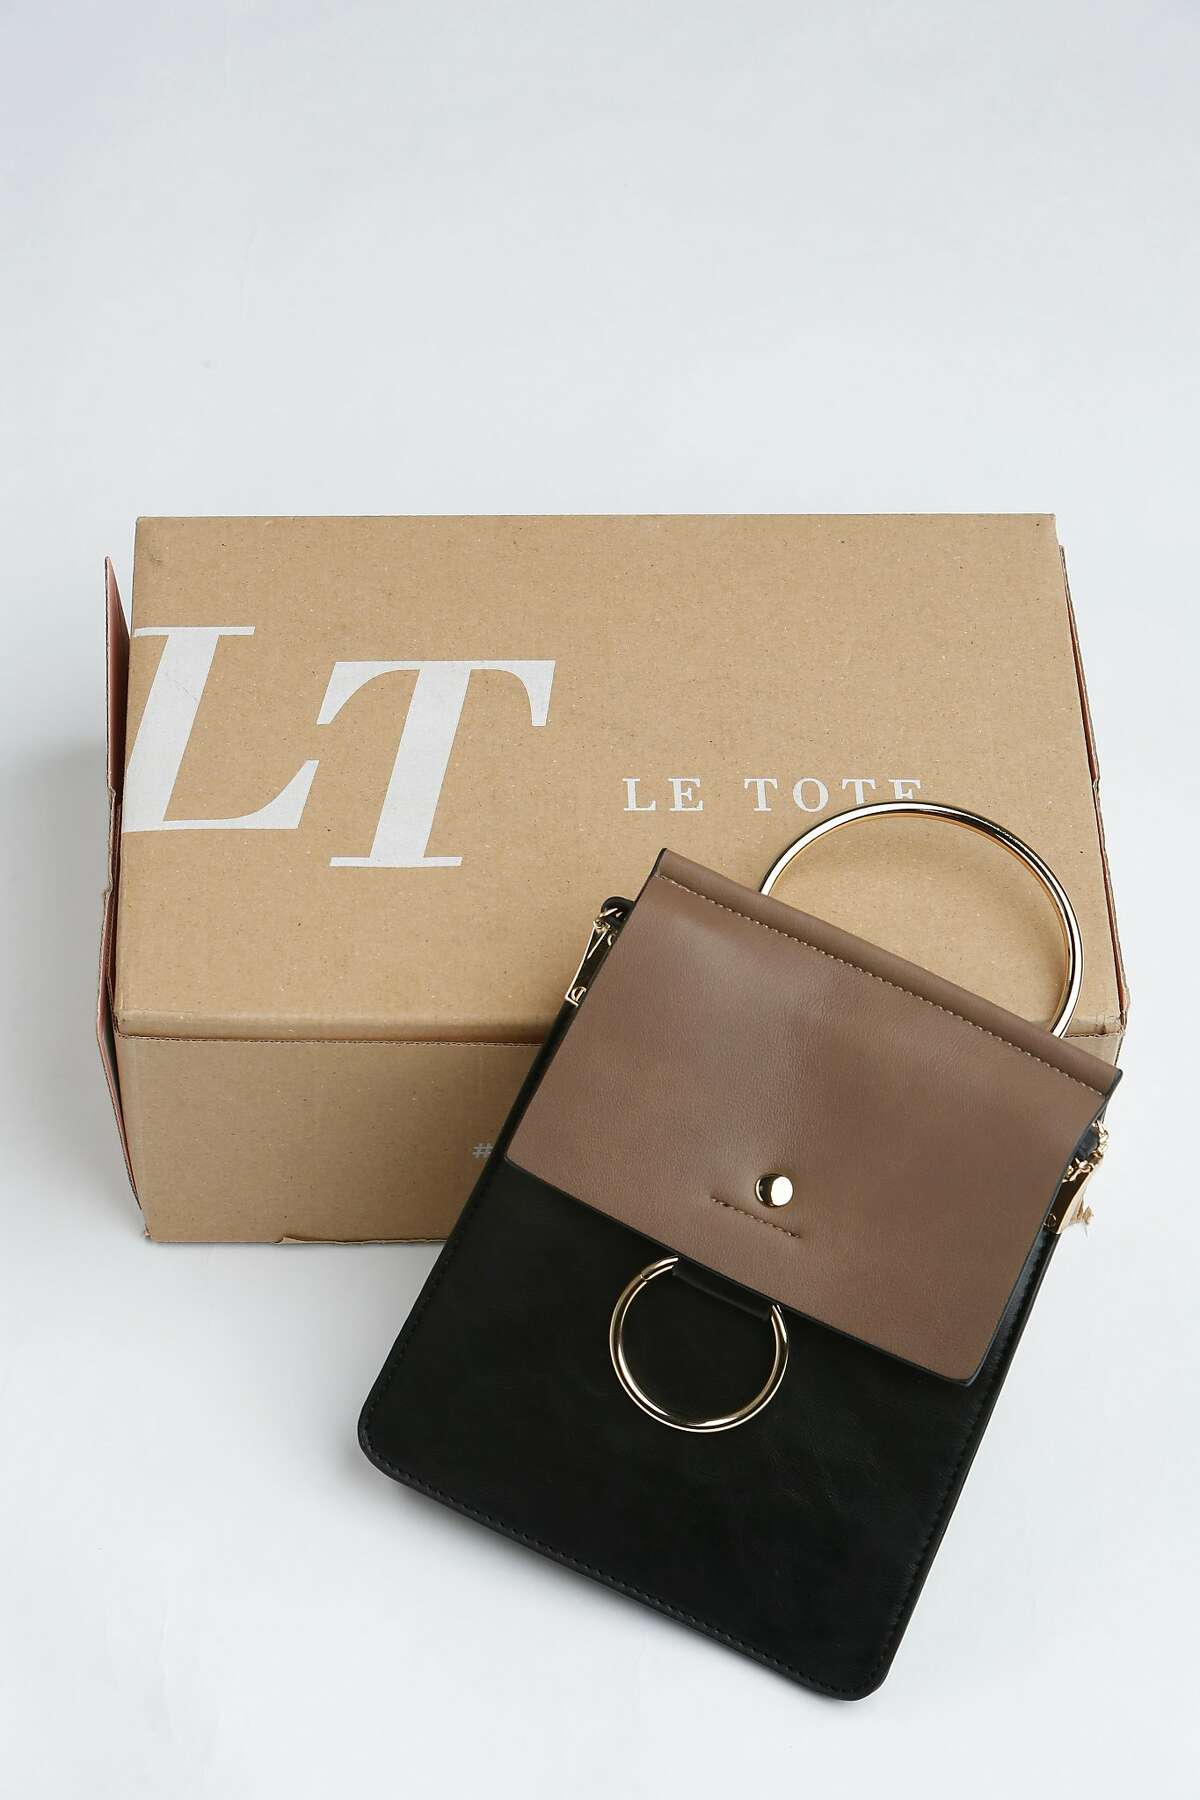 A Le Tote box and purse are seen on Tuesday, September 13, 2016 in San Francisco, California.